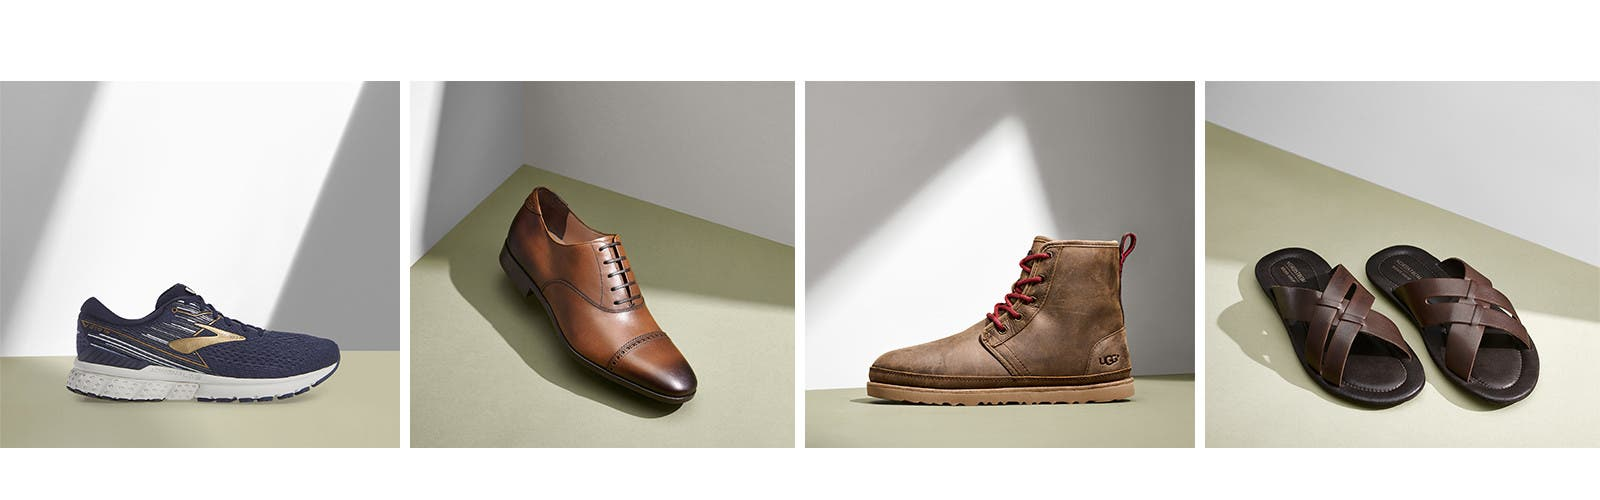 Essential men's shoes for the season.